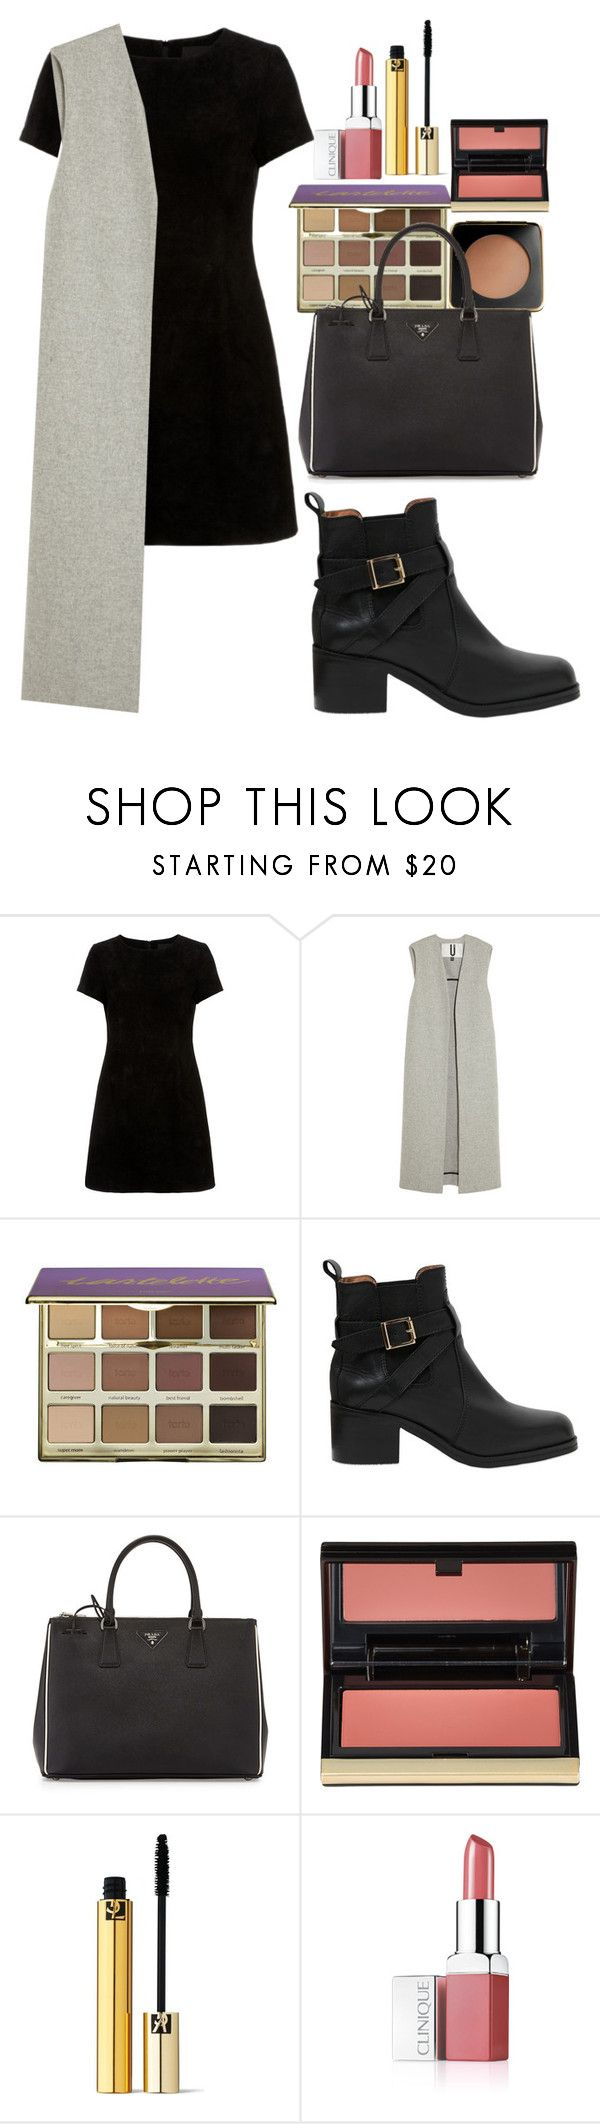 """""""Untitled #707"""" by imadeintheuk ❤ liked on Polyvore featuring Topshop Unique, tarte, Carvela Kurt Geiger, Prada, Kevyn Aucoin, Yves Saint Laurent, Clinique, outfit, topshop and newlook"""